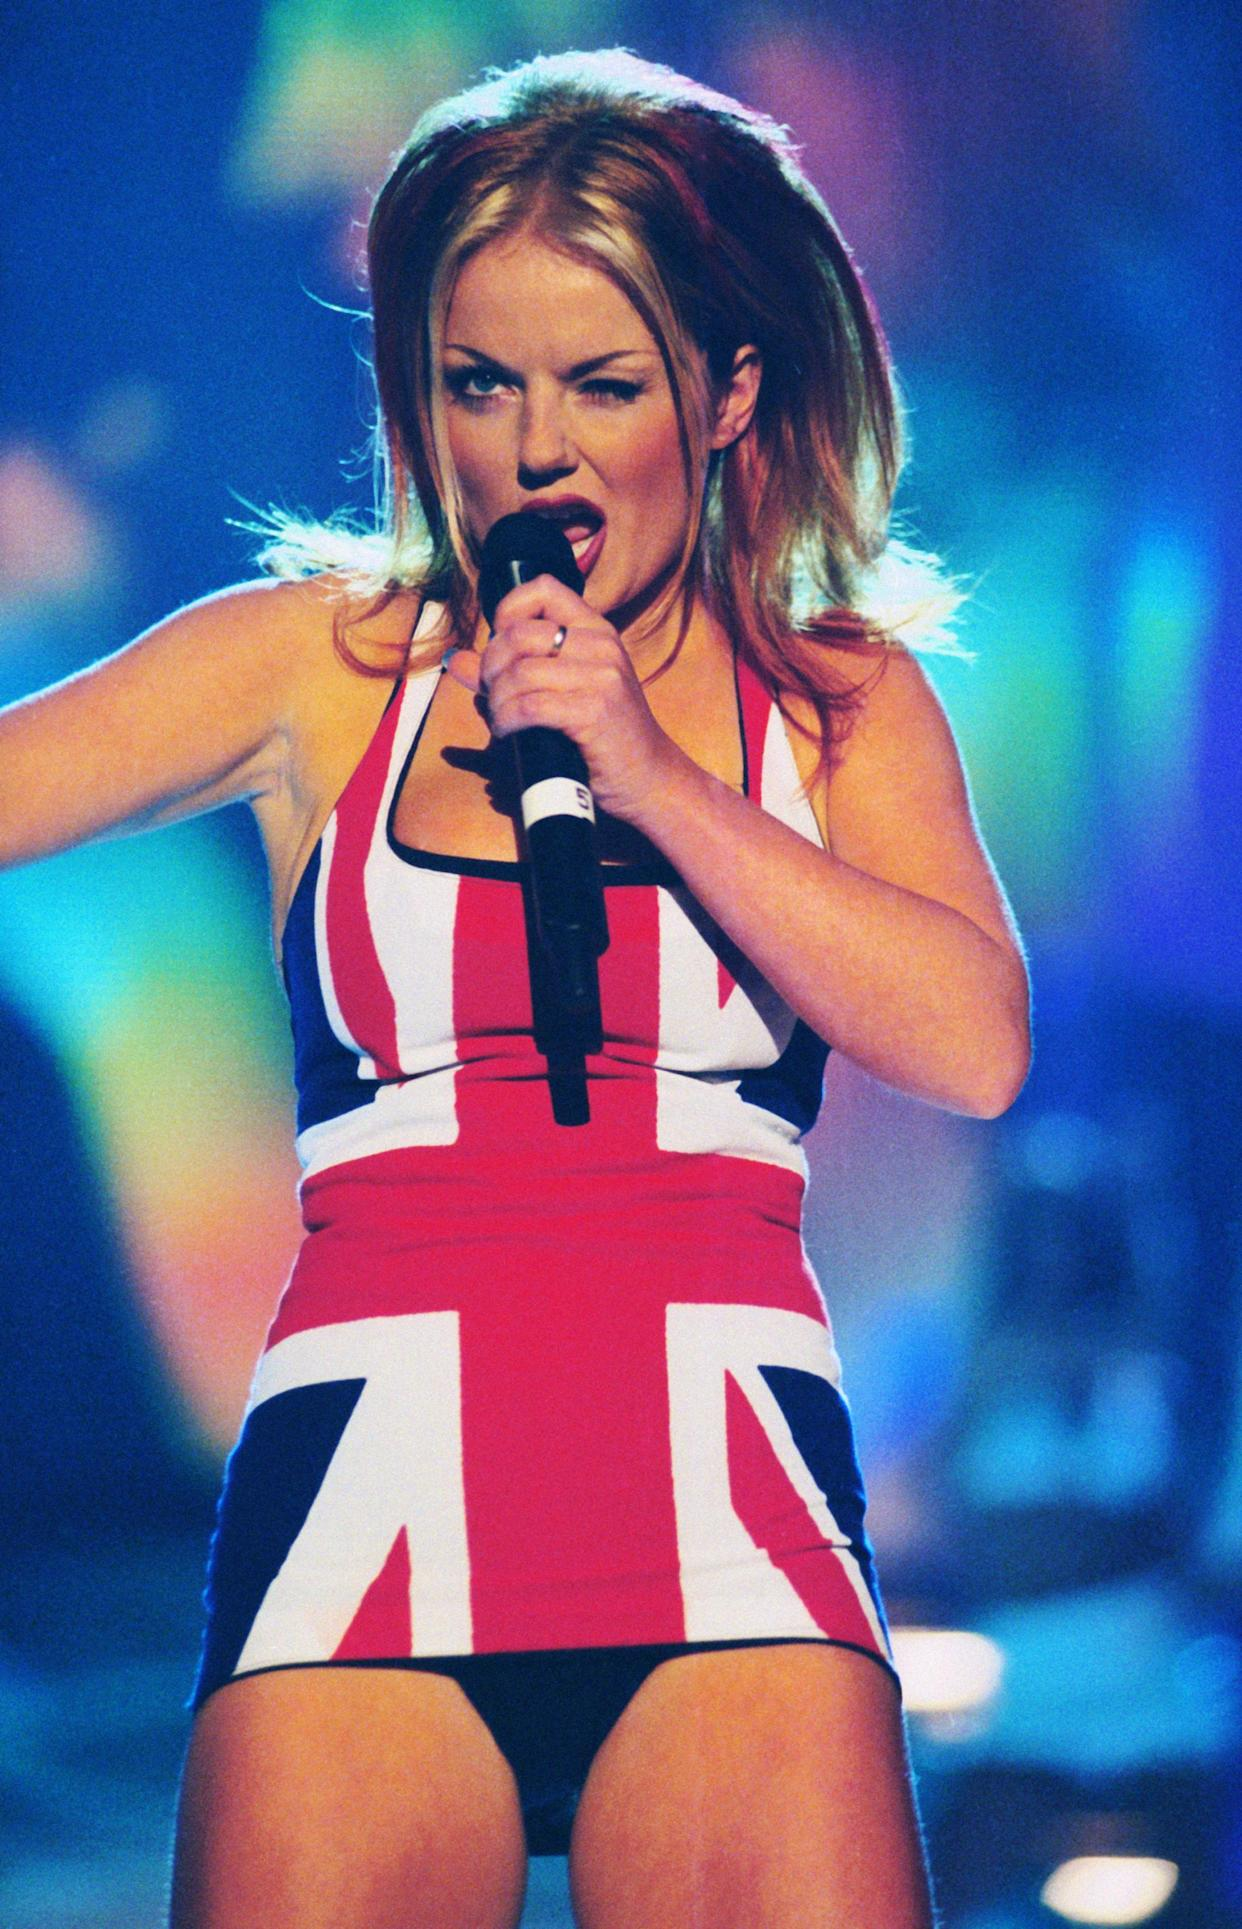 Geri Halliwell performing with the Spice Girls at the Brits in 1997. (Getty Images)